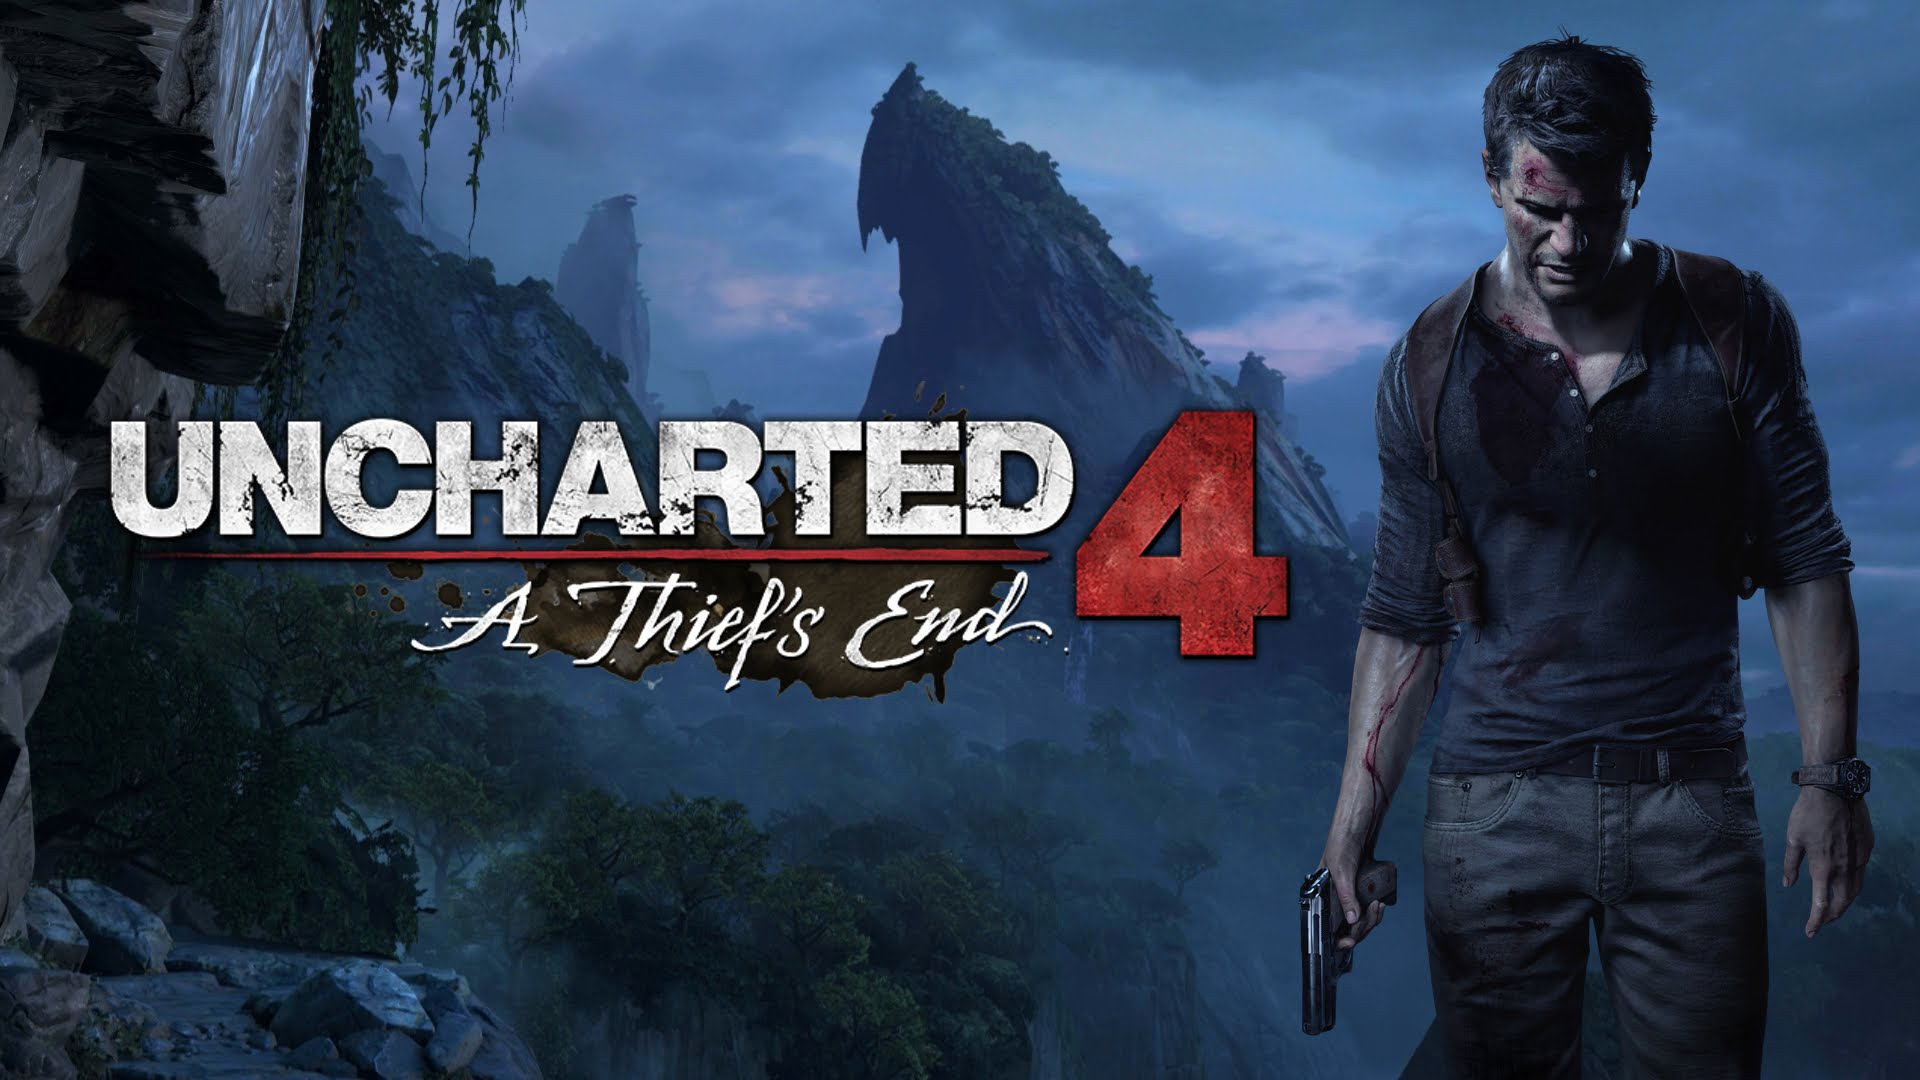 uncharted 4 - video game review